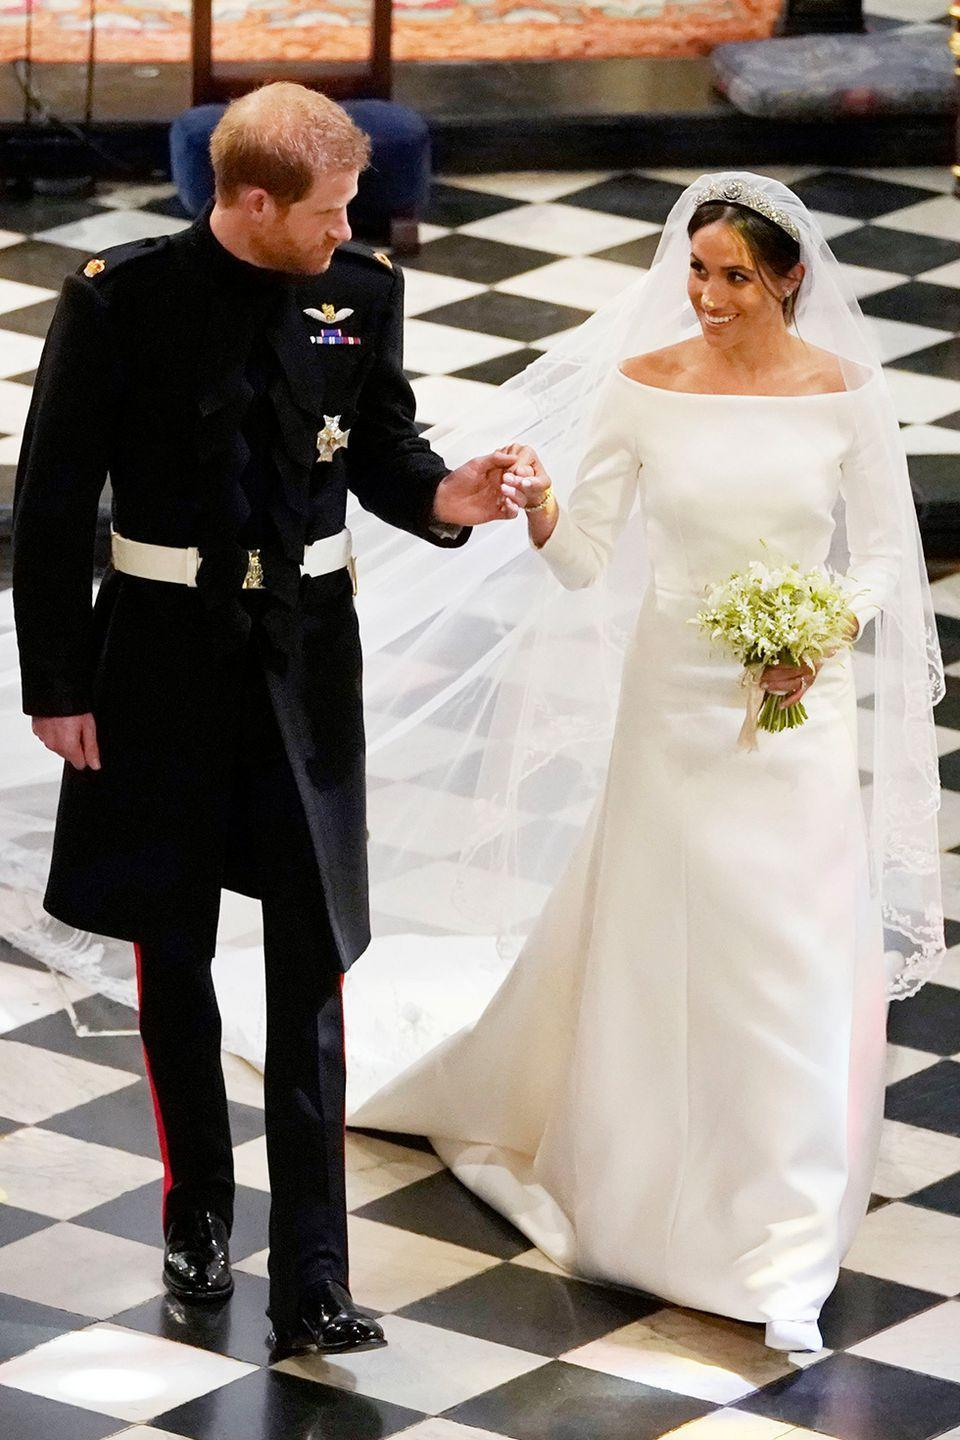 <p>The Duchess of Sussex was truly a regal vision on her wedding day in a striking boatneck Givenchy couture gown by Clare Waight Keller. The gorgeous cathedral-length veil carried symbolic meaning, as Waight Keller captured the flora of 53 Commonwealth countries with beautiful embroidery.</p>